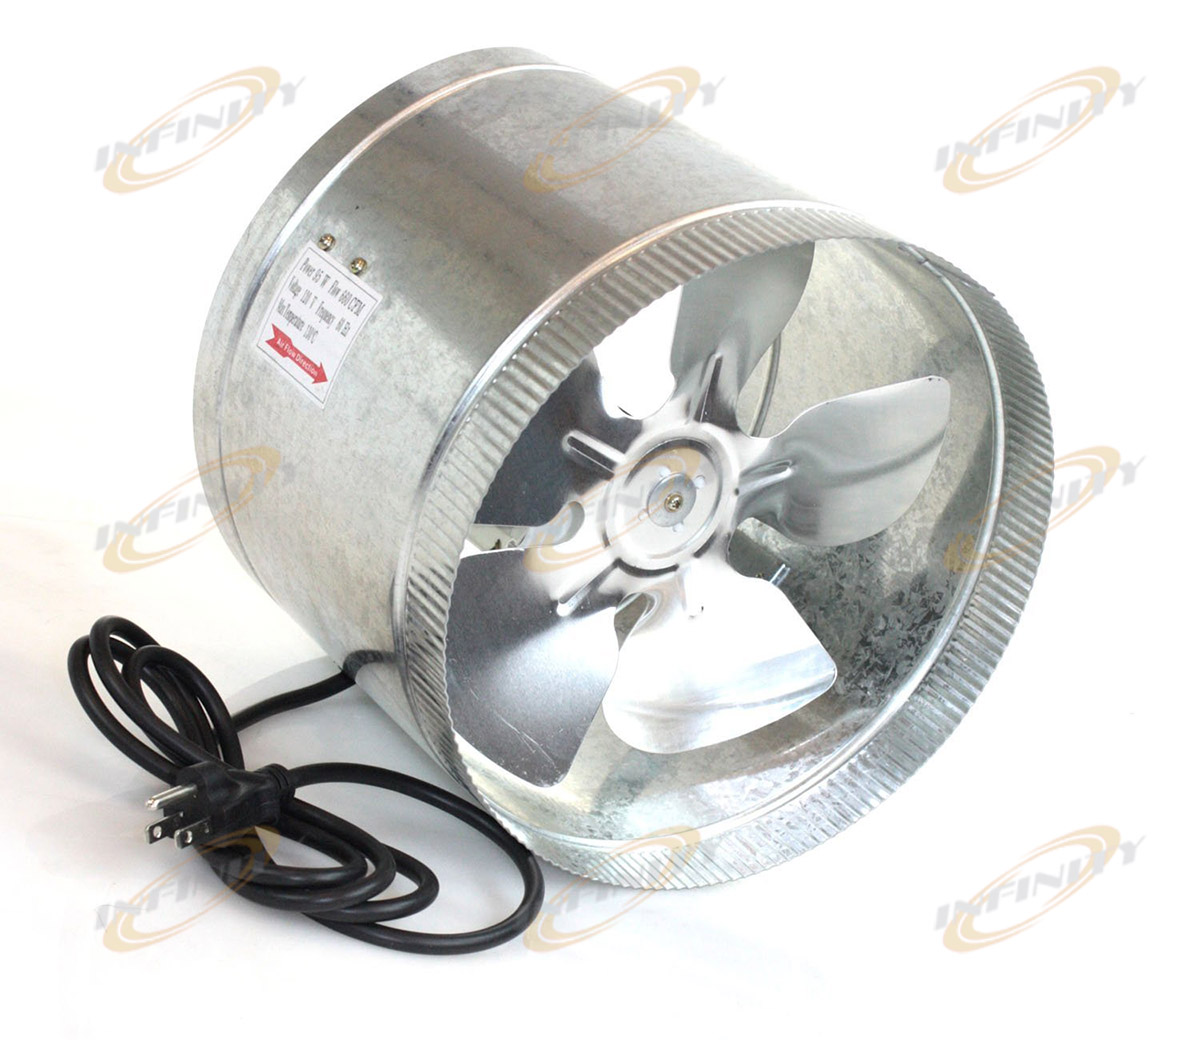 Inline Duct Vent : Quot in line duct fan cfm booster inline cool air